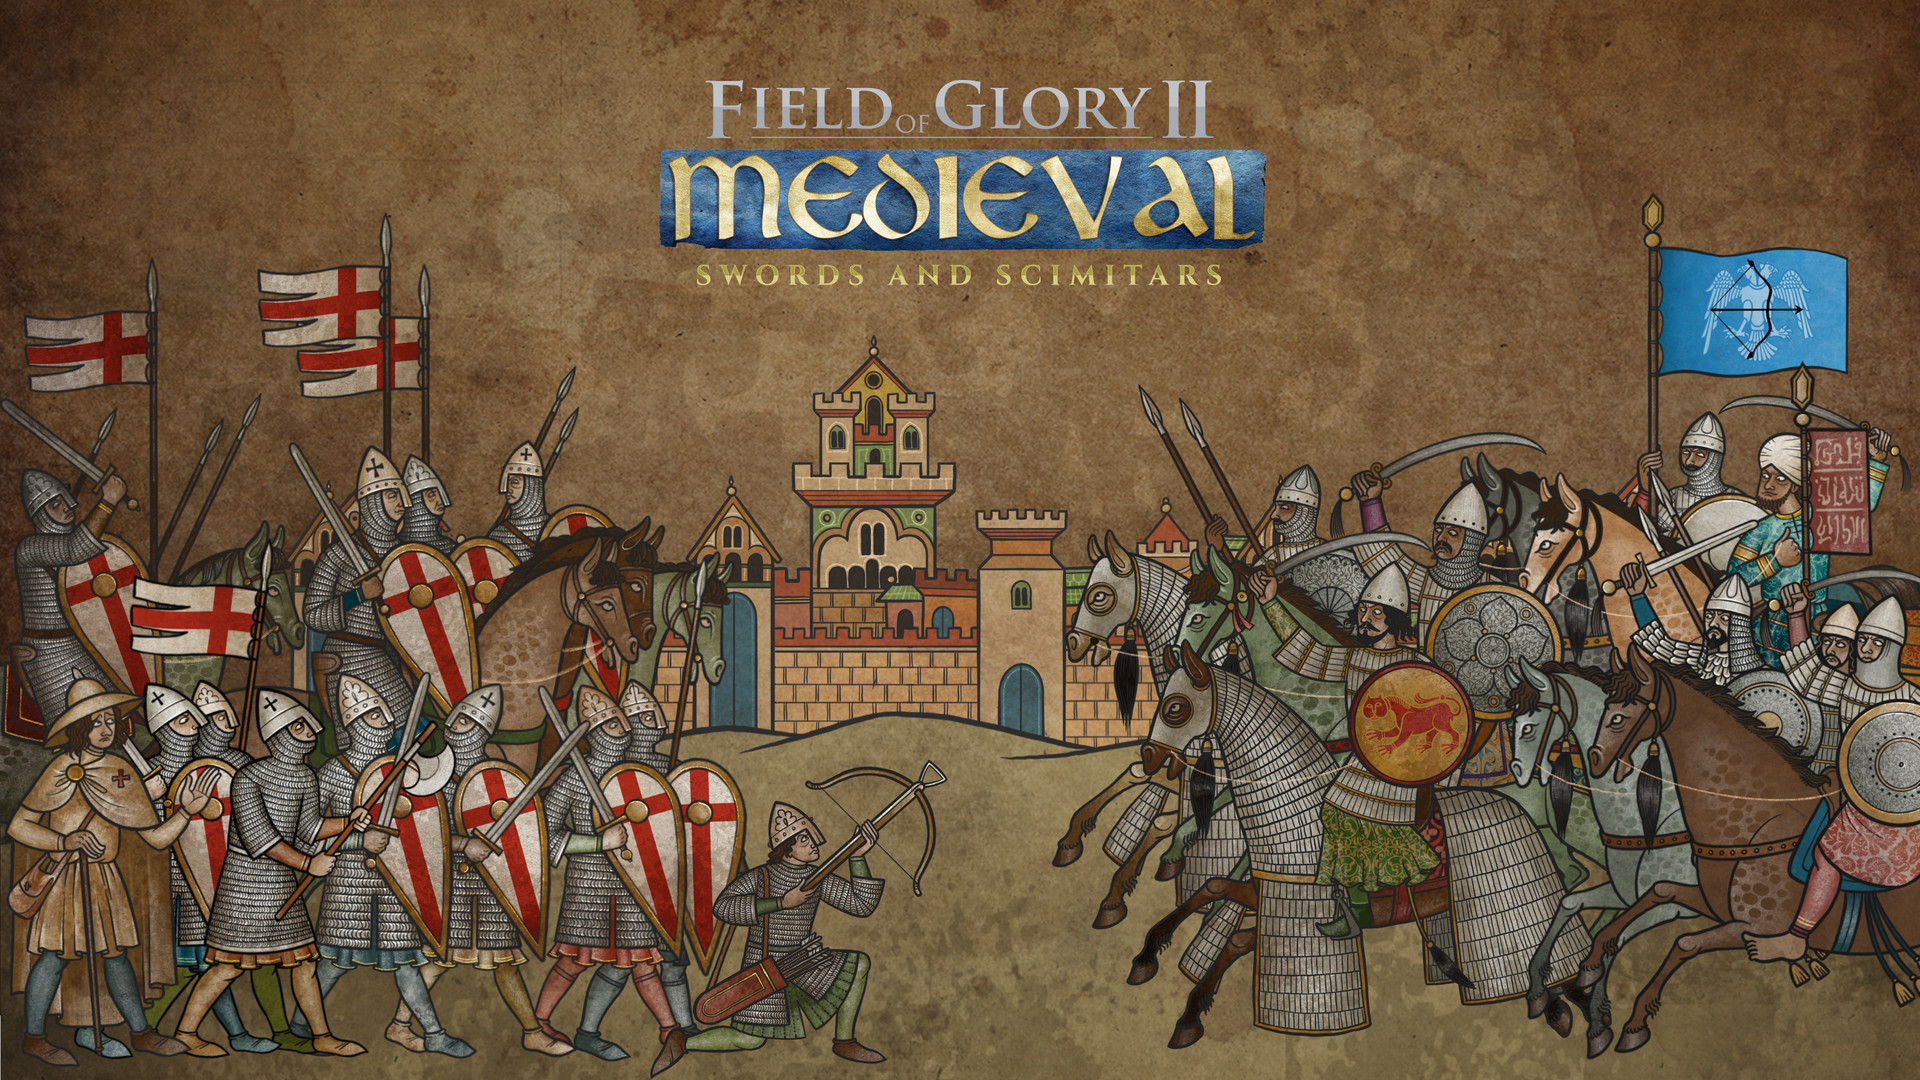 Field of Glory II Medieval - Swords and Scimitars Free Download